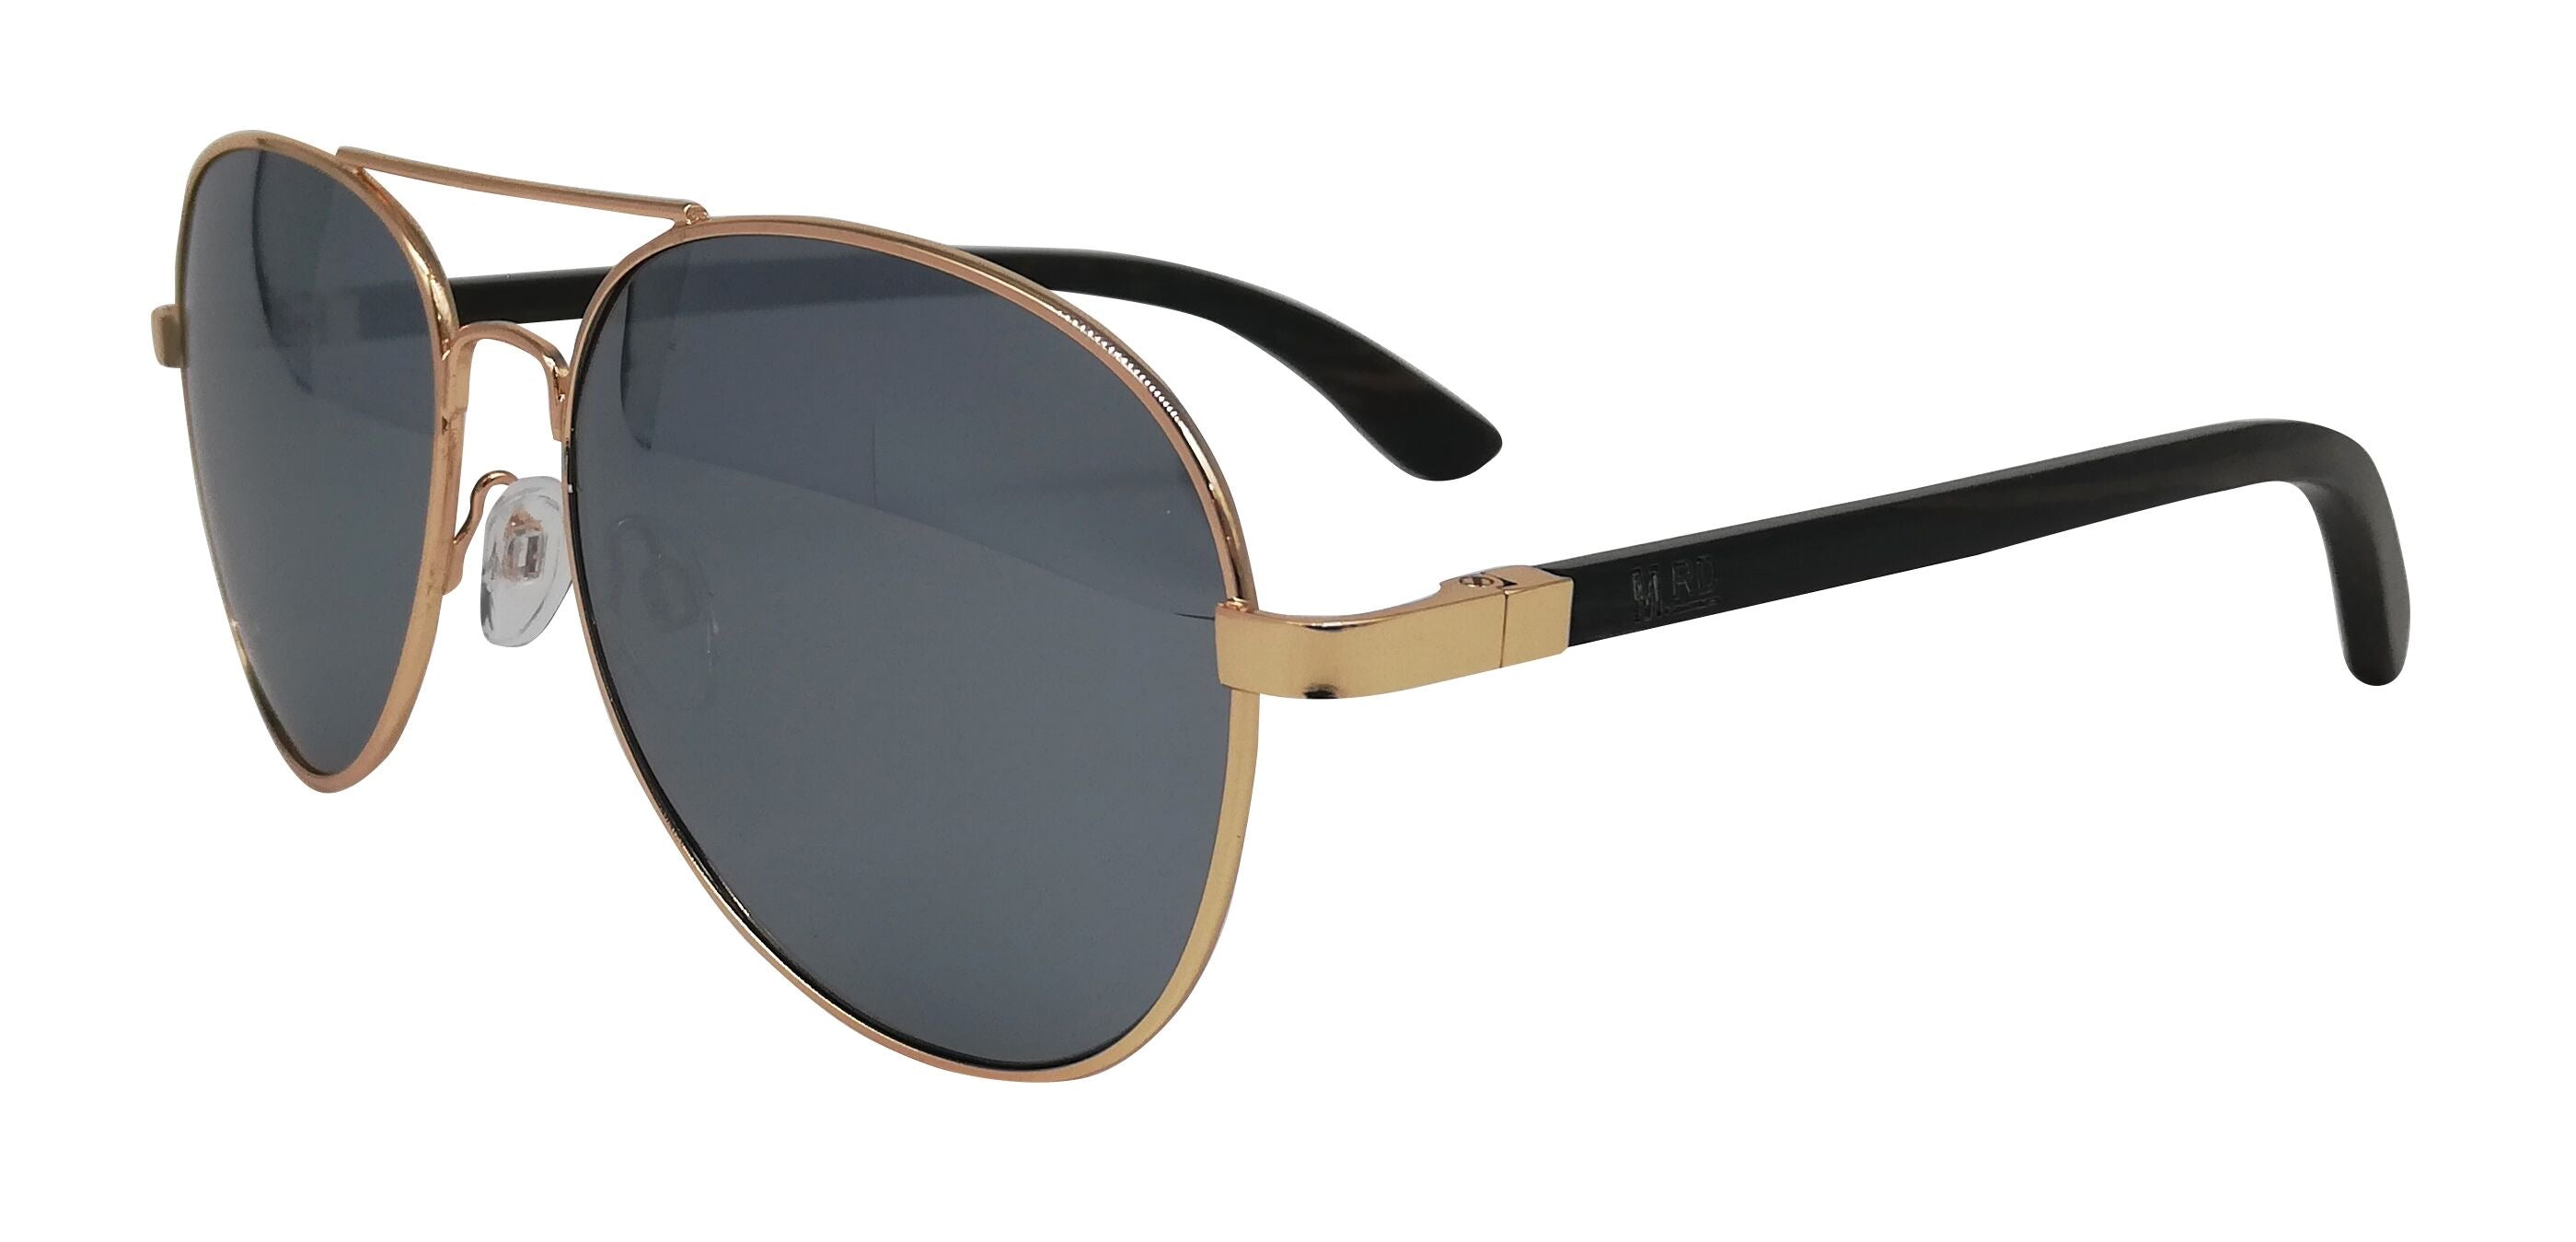 AviatorCharlie sunglasses Moana Road 3901